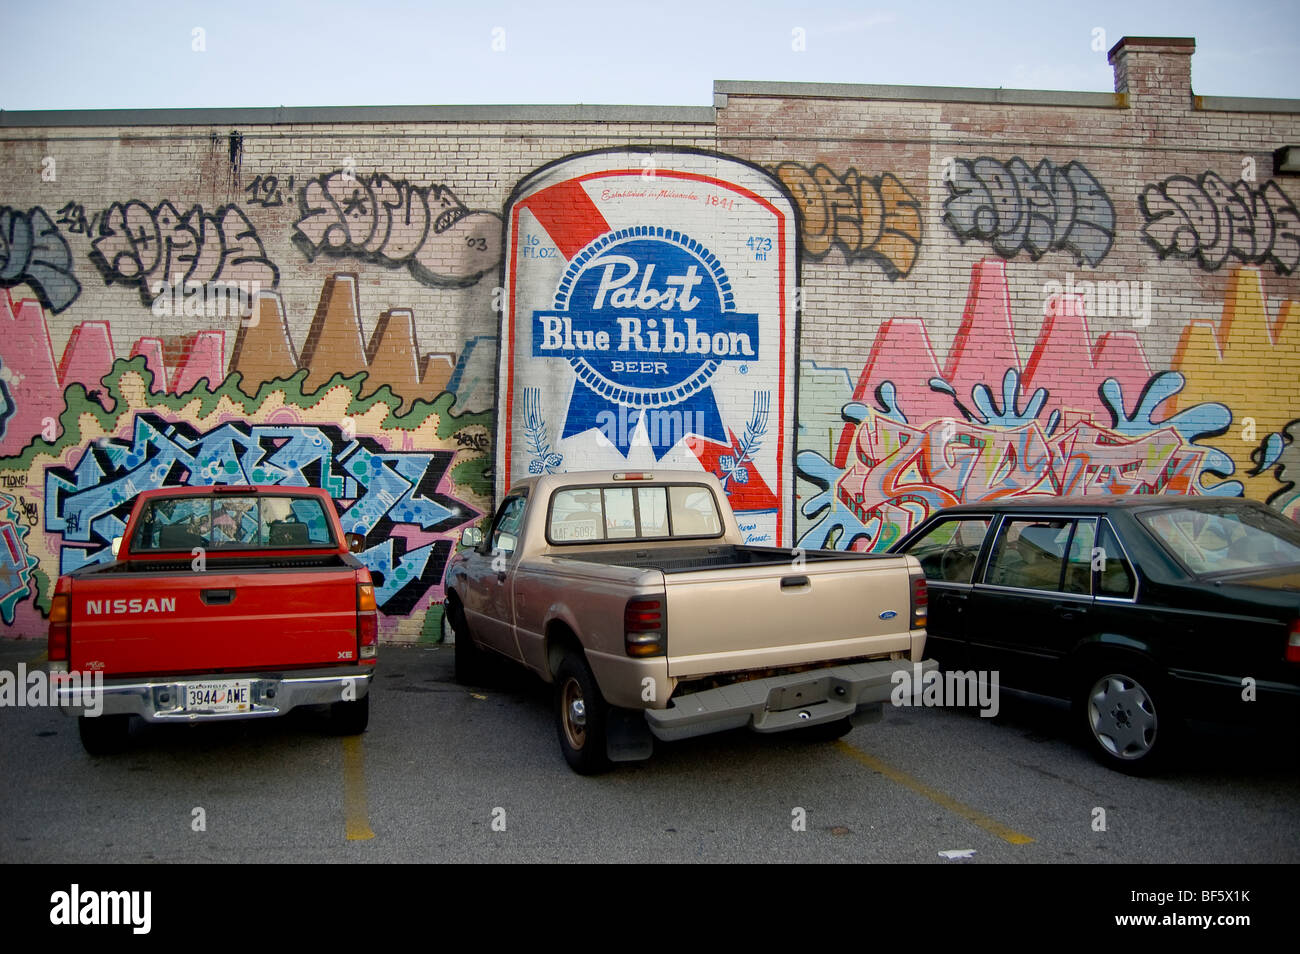 Graffiti wall atlanta - A Graffiti Covered Wall Featuring A Giant Pabst Blue Ribbon At A Parking Lot In East Atlanta Ga